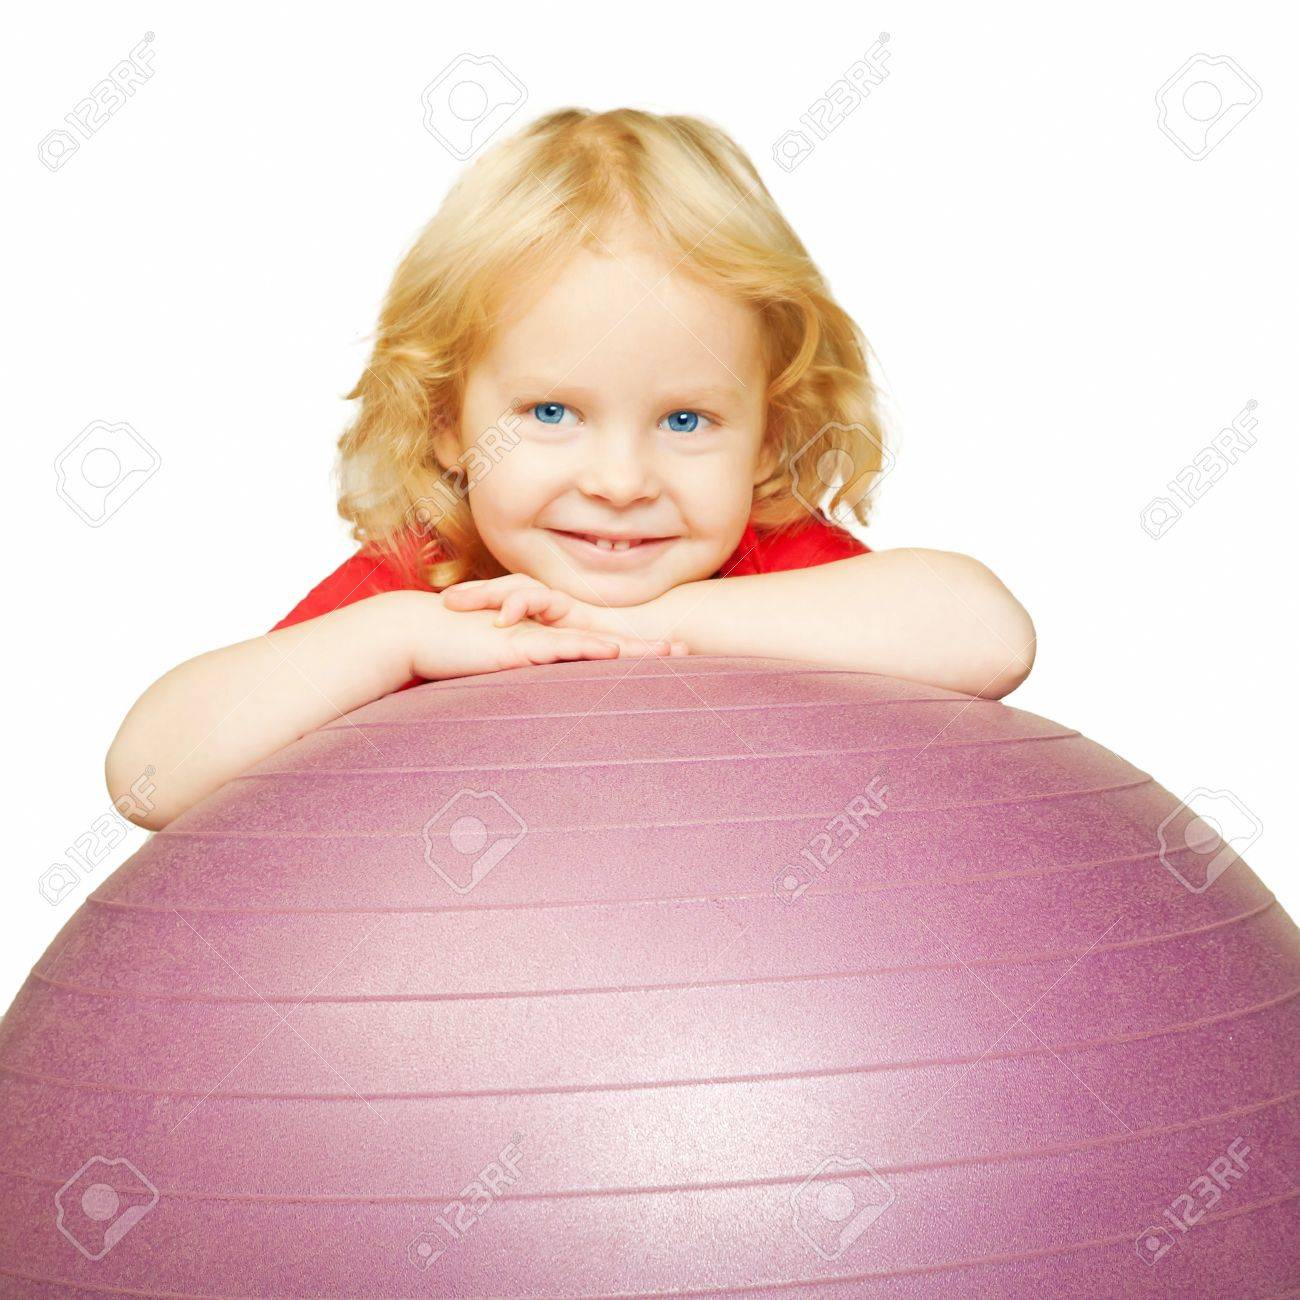 Healthy lifestyle. Child playing sports, smiling and resting on fitball. Isolated on white background Stock Photo - 16686024